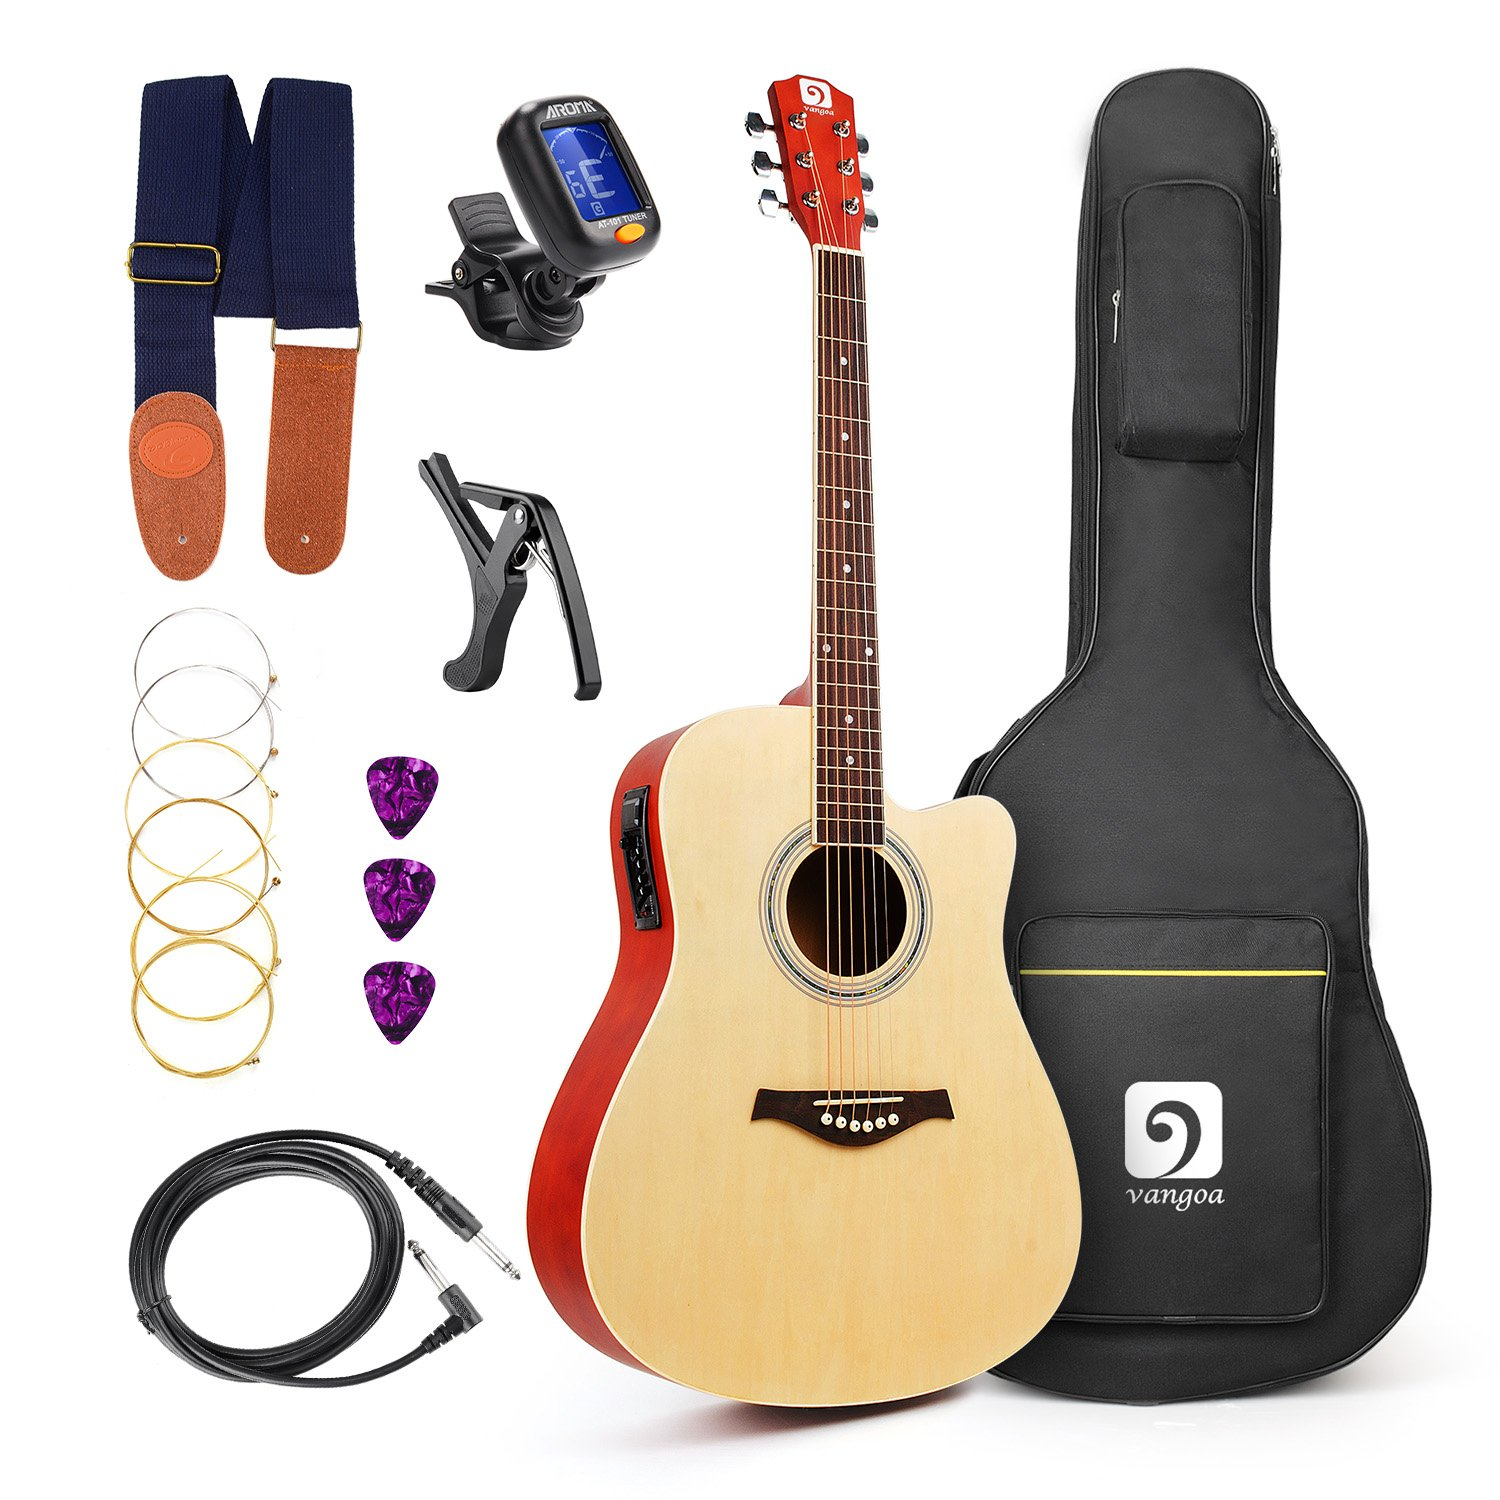 Vangoa - 41'' Full-Size VG-41ECNA Natural Acoustic Electric Cutaway Guitar + 4 Band EQ with Bag, Strap, Tuner, String, Picks, Capo by Vangoa (Image #1)